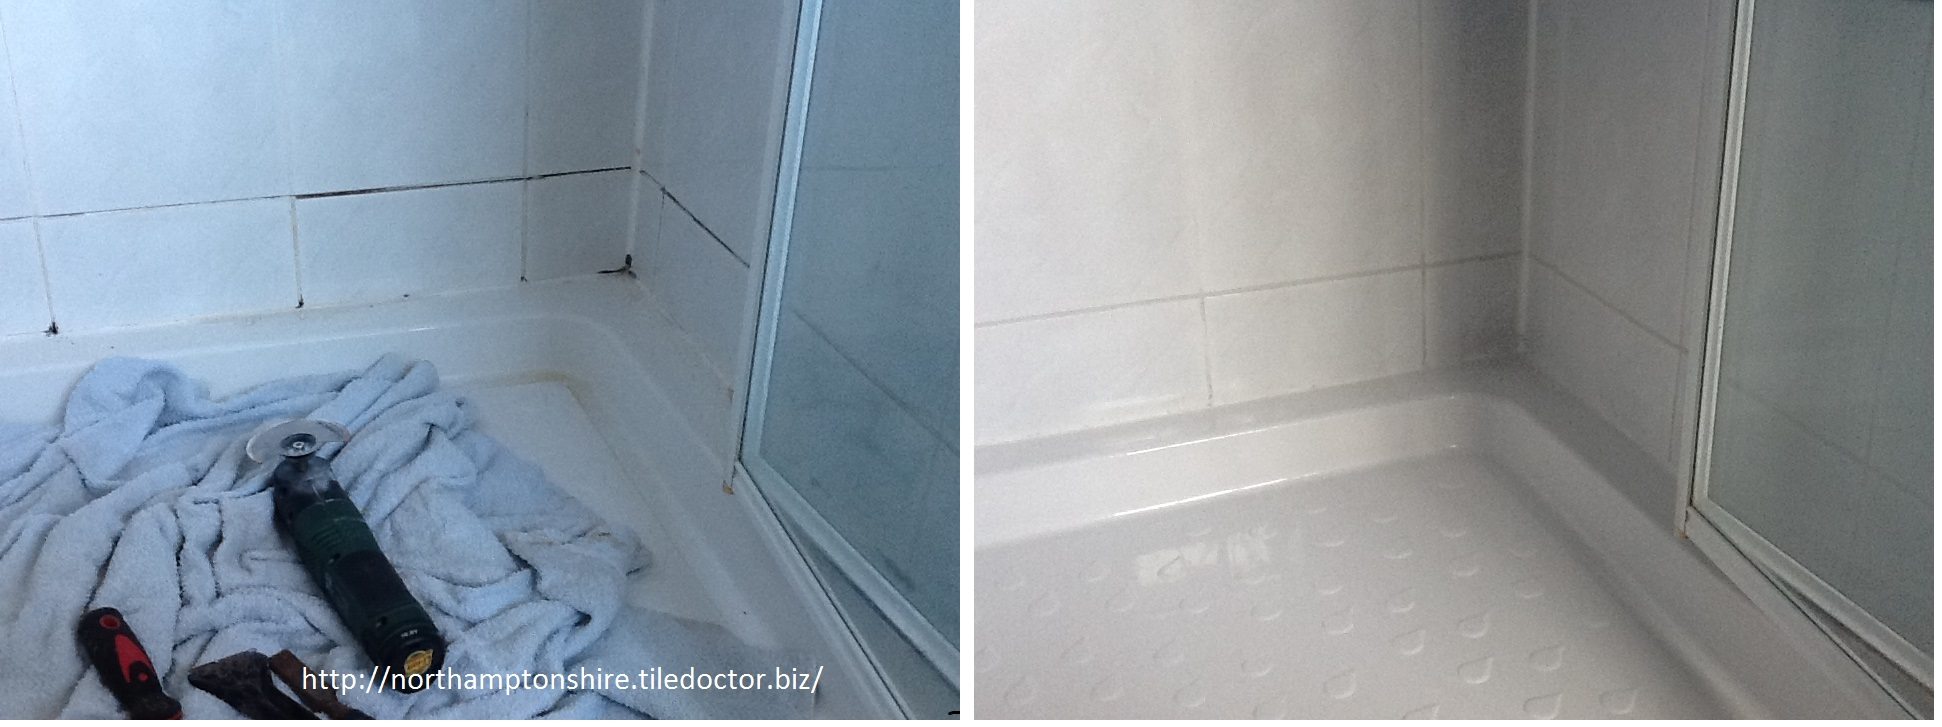 Mouldy shower cubicle before and after Northampton